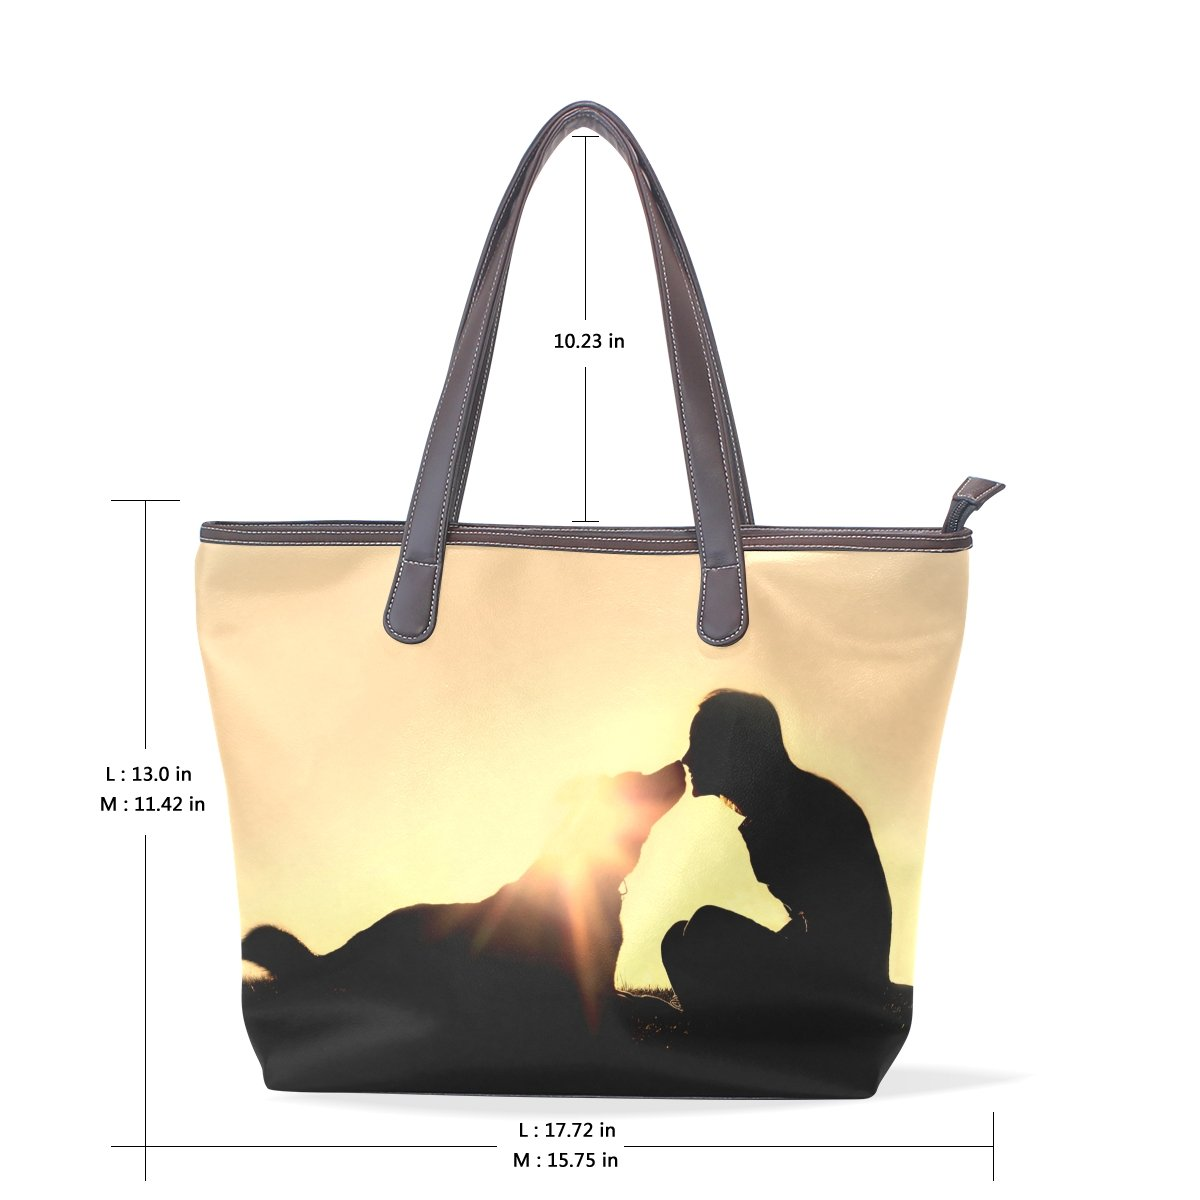 SCDS People And Dogs PU Leather Lady Handbag Tote Bag Zipper Shoulder Bag